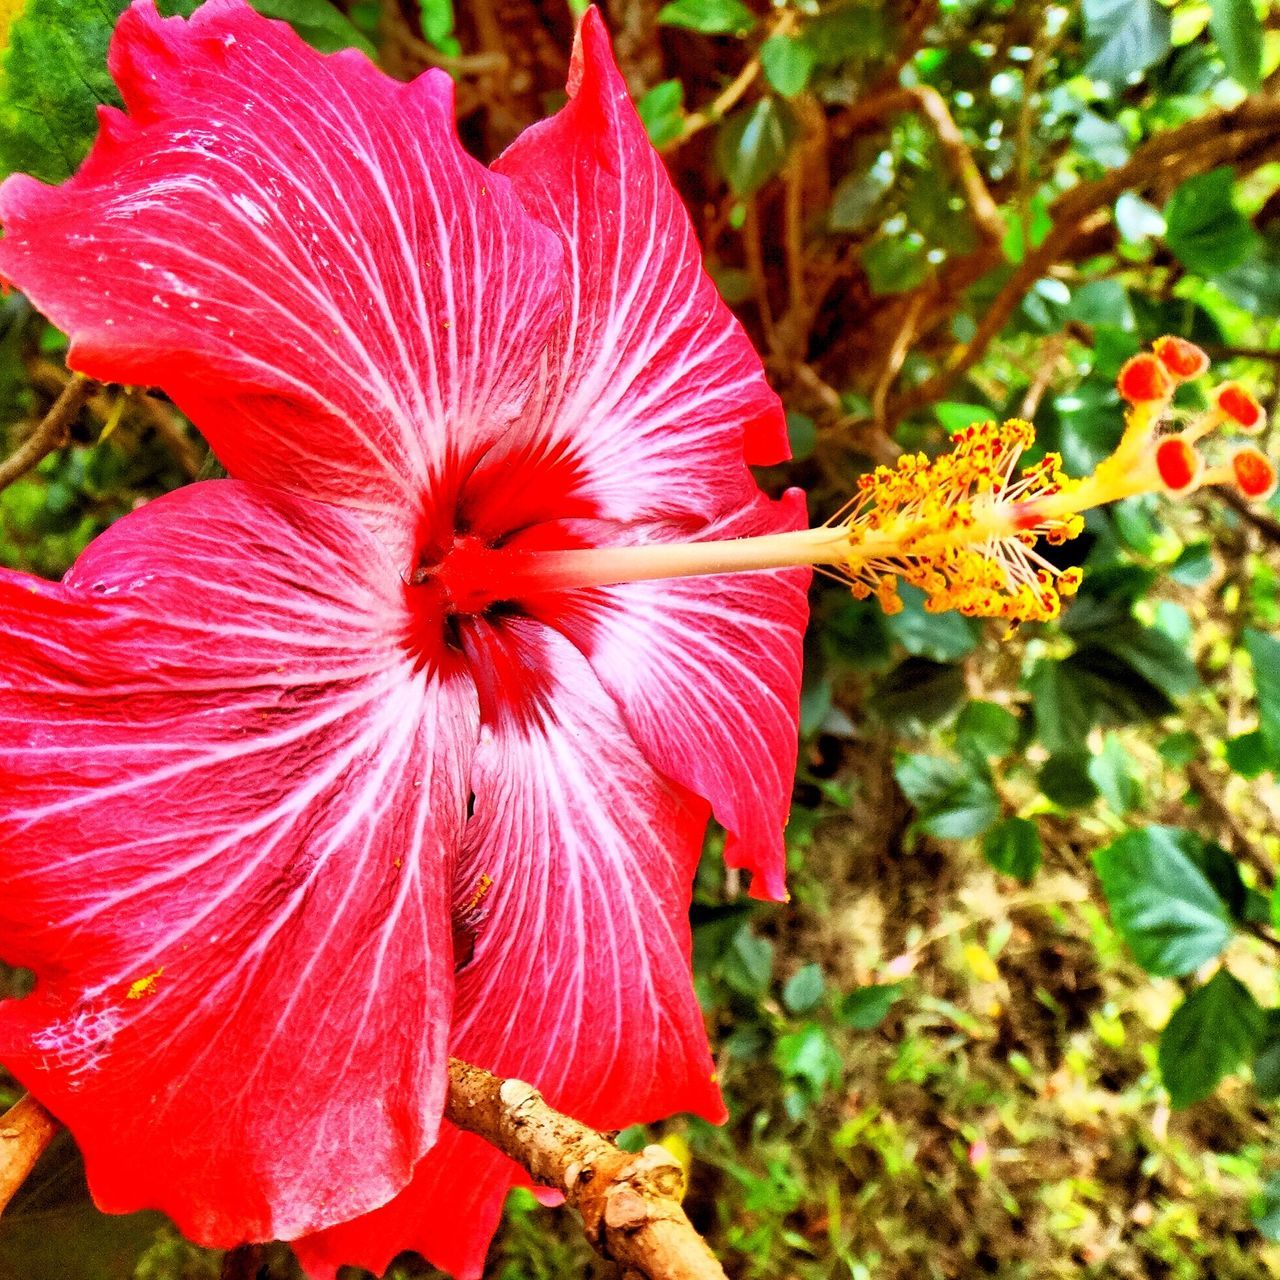 flower, fragility, nature, growth, leaf, petal, flower head, red, close-up, beauty in nature, hibiscus, day, outdoors, stamen, no people, freshness, plant, day lily